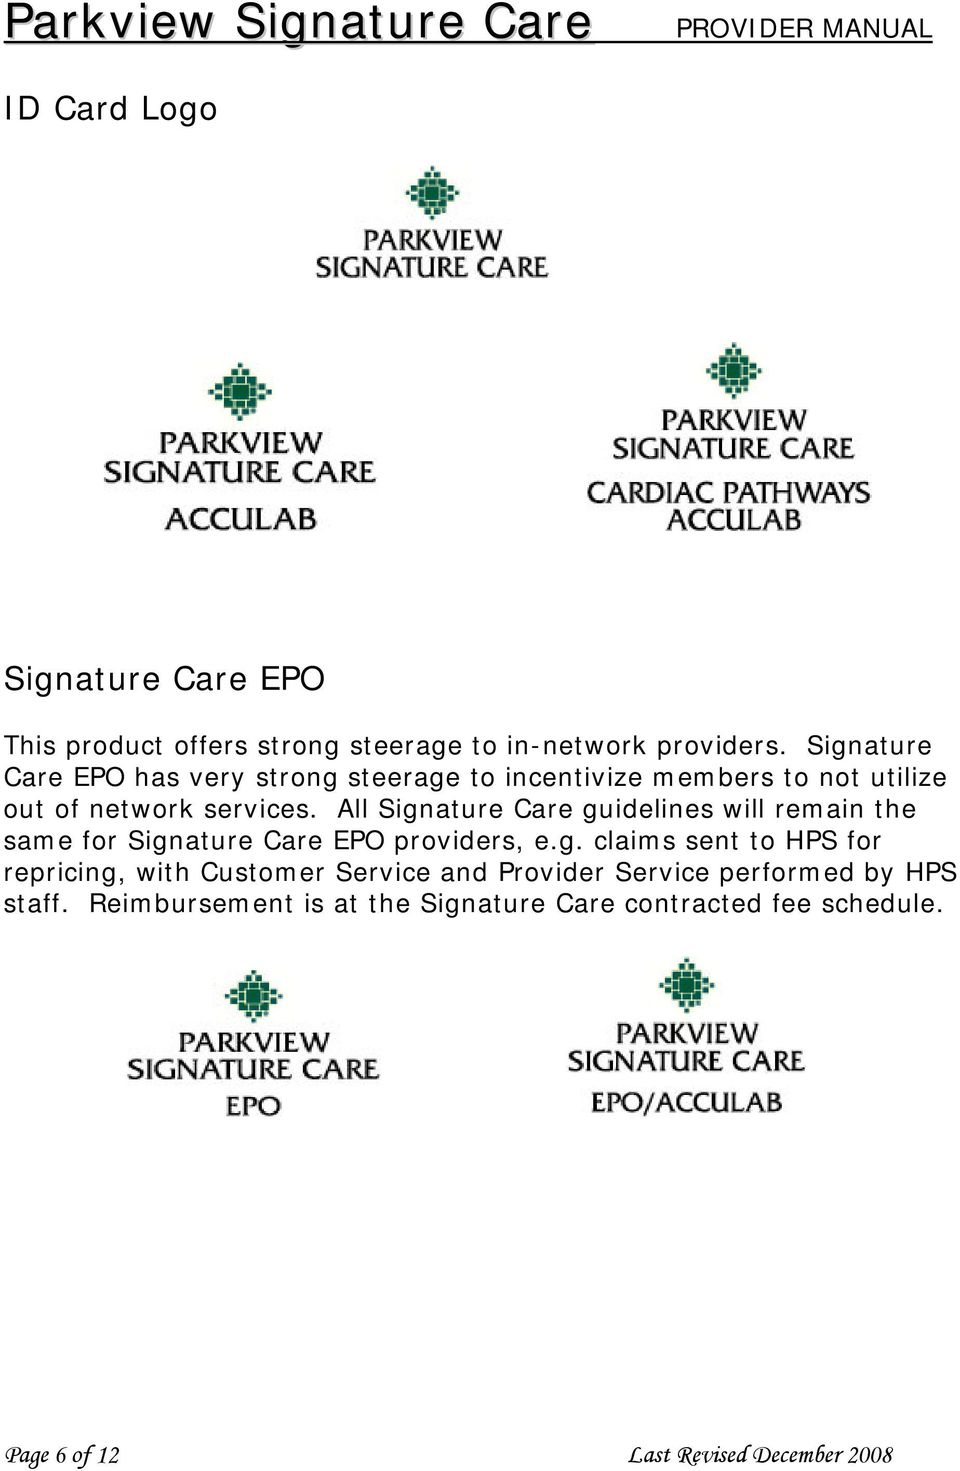 All Signature Care guidelines will remain the same for Signature Care EPO providers, e.g. claims sent to HPS for repricing, with Customer Service and Provider Service performed by HPS staff.